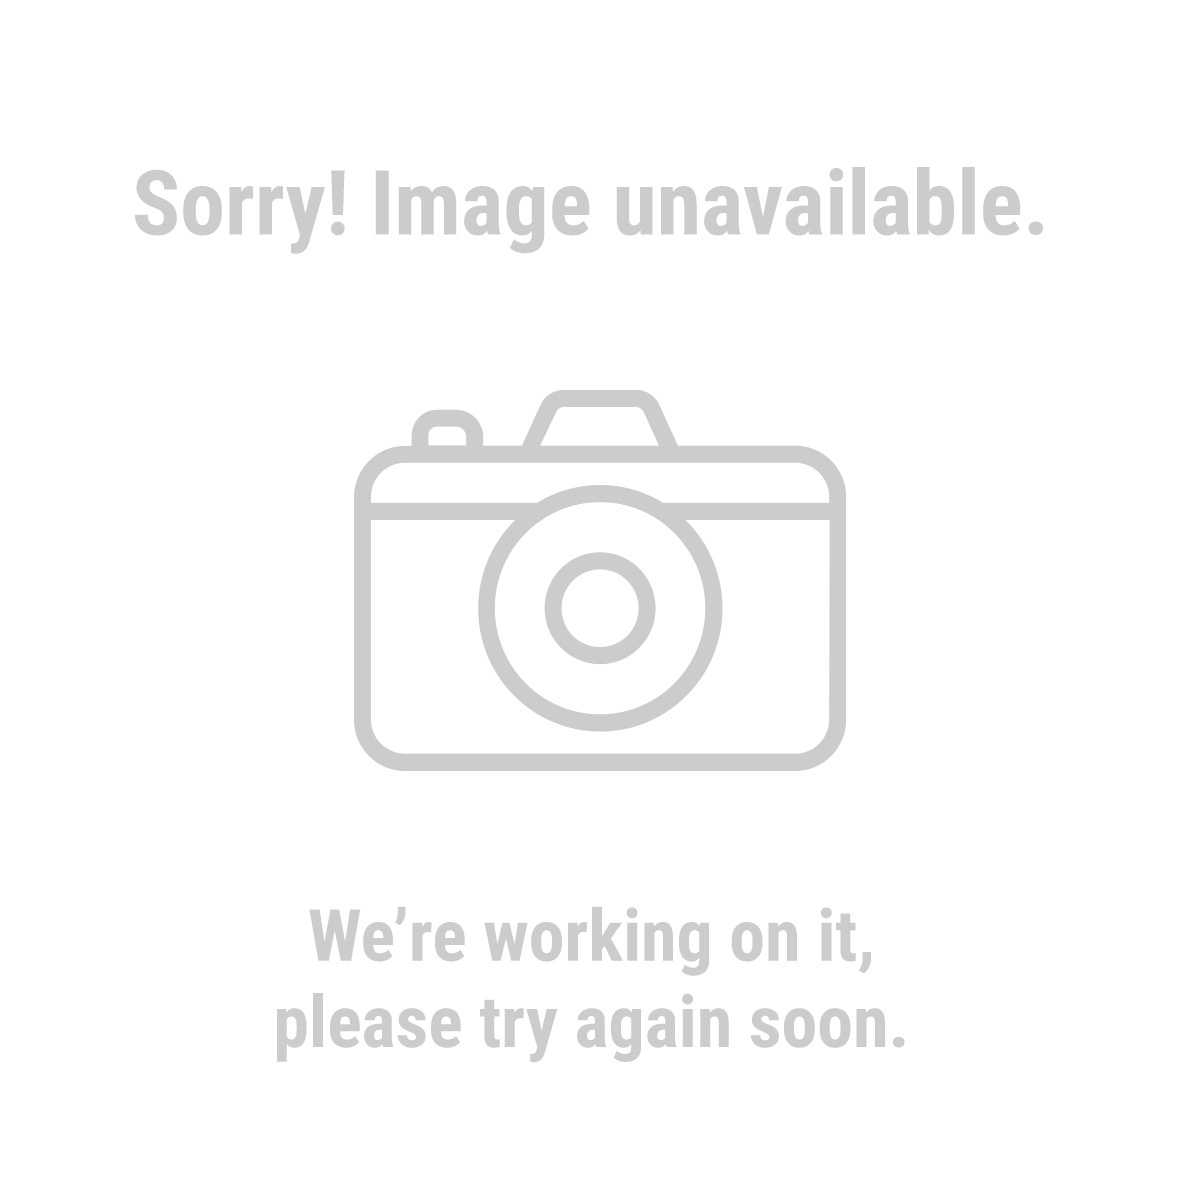 Greenwood 9583 12 Volt 15 Gallon Spot Sprayer